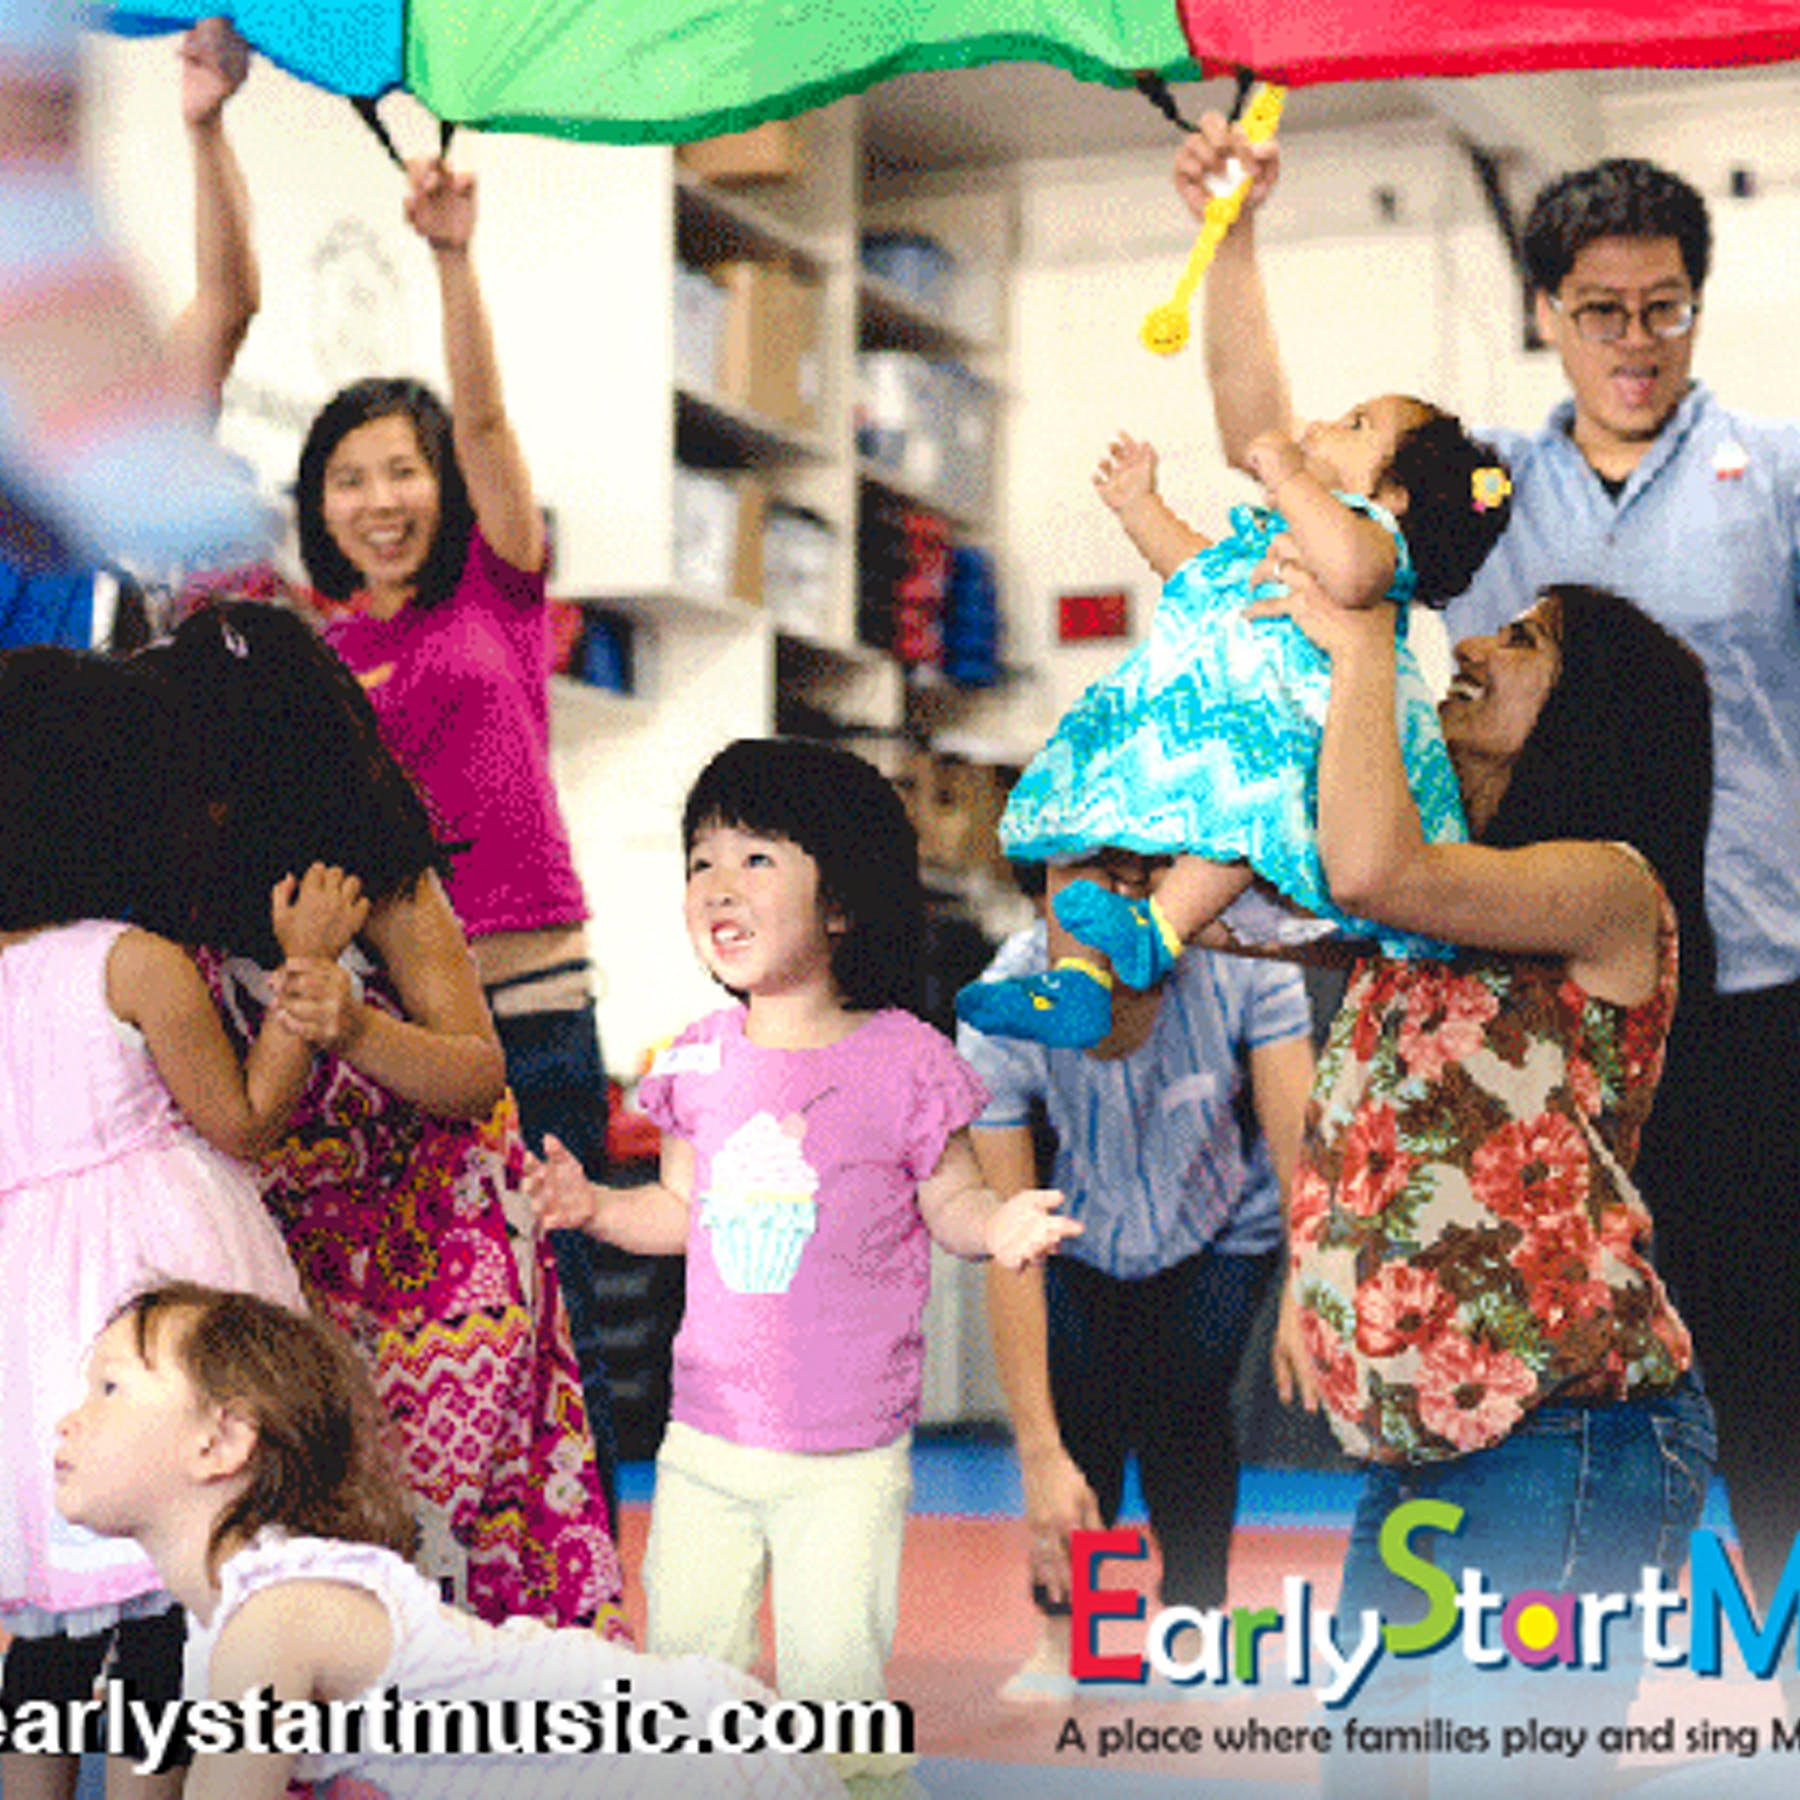 Music Together (Early Start Music) in Fremont - Parent Reviews on Winnie